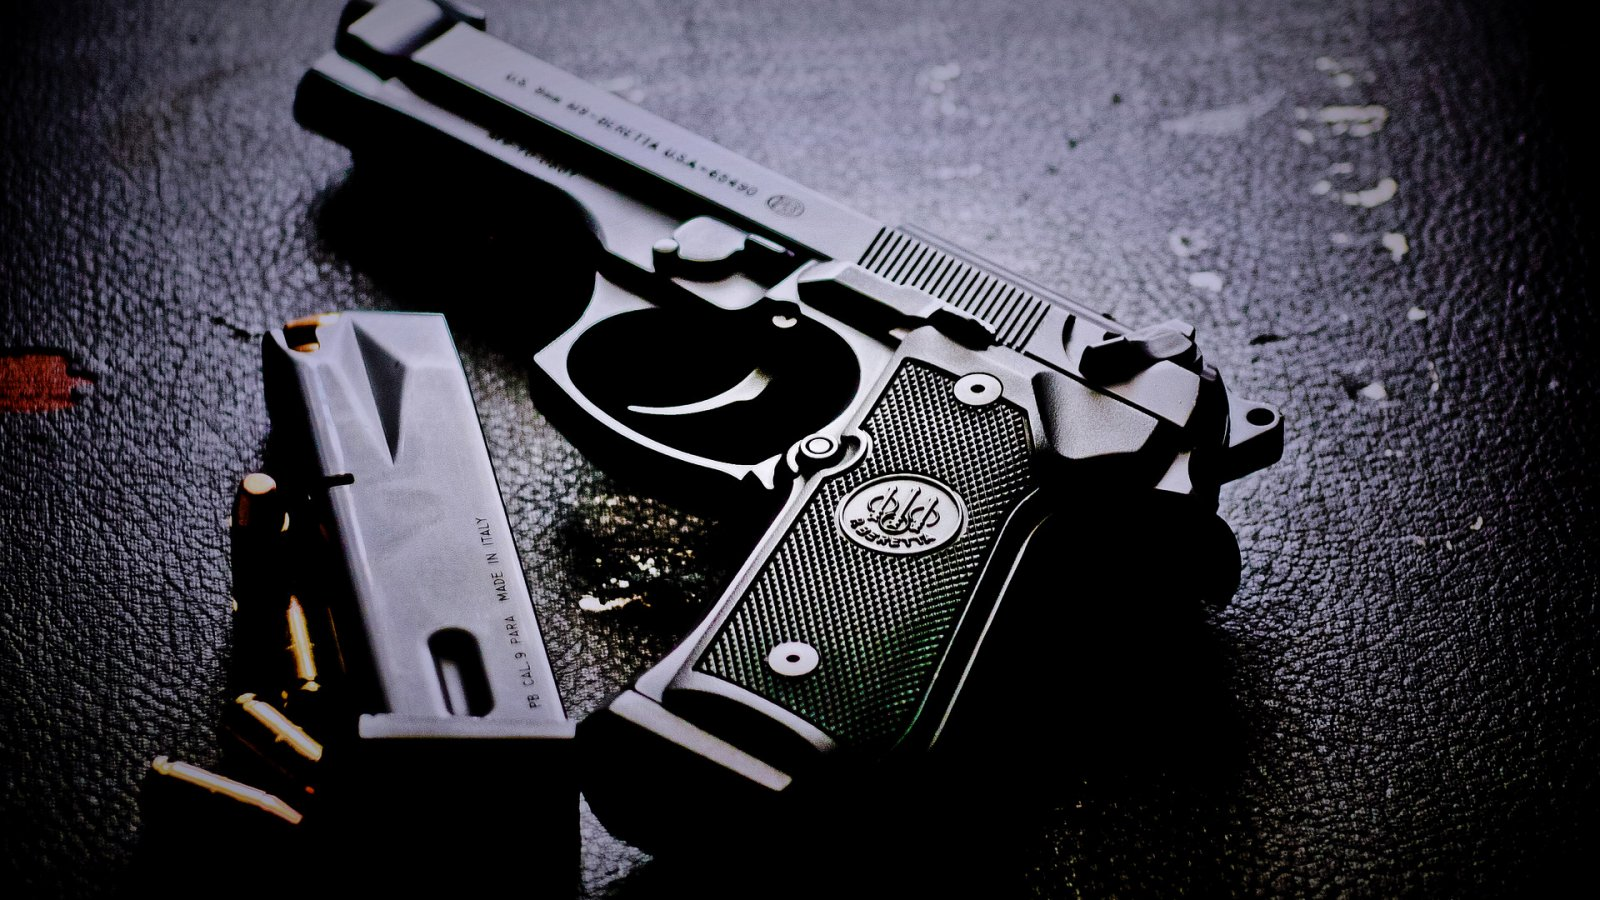 Beretta m9 Wallpaper Beretta m9 Pistol Widescreen